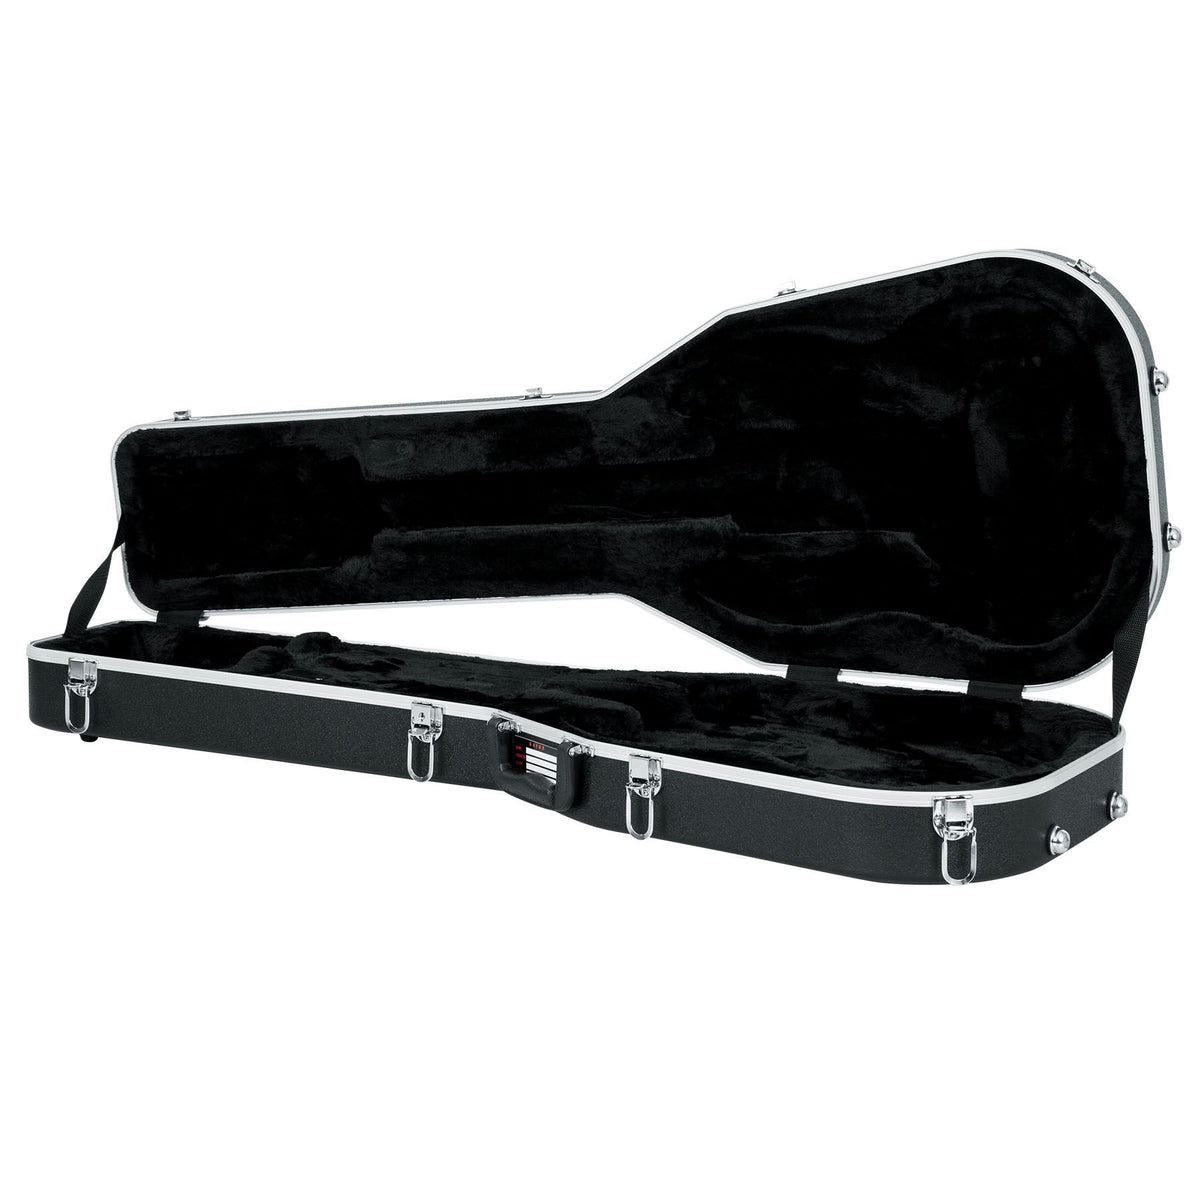 Gator Cases Deluxe Molded Case for Gibson SG Clasic, SG Standard, SG Supreme Electric Guitars